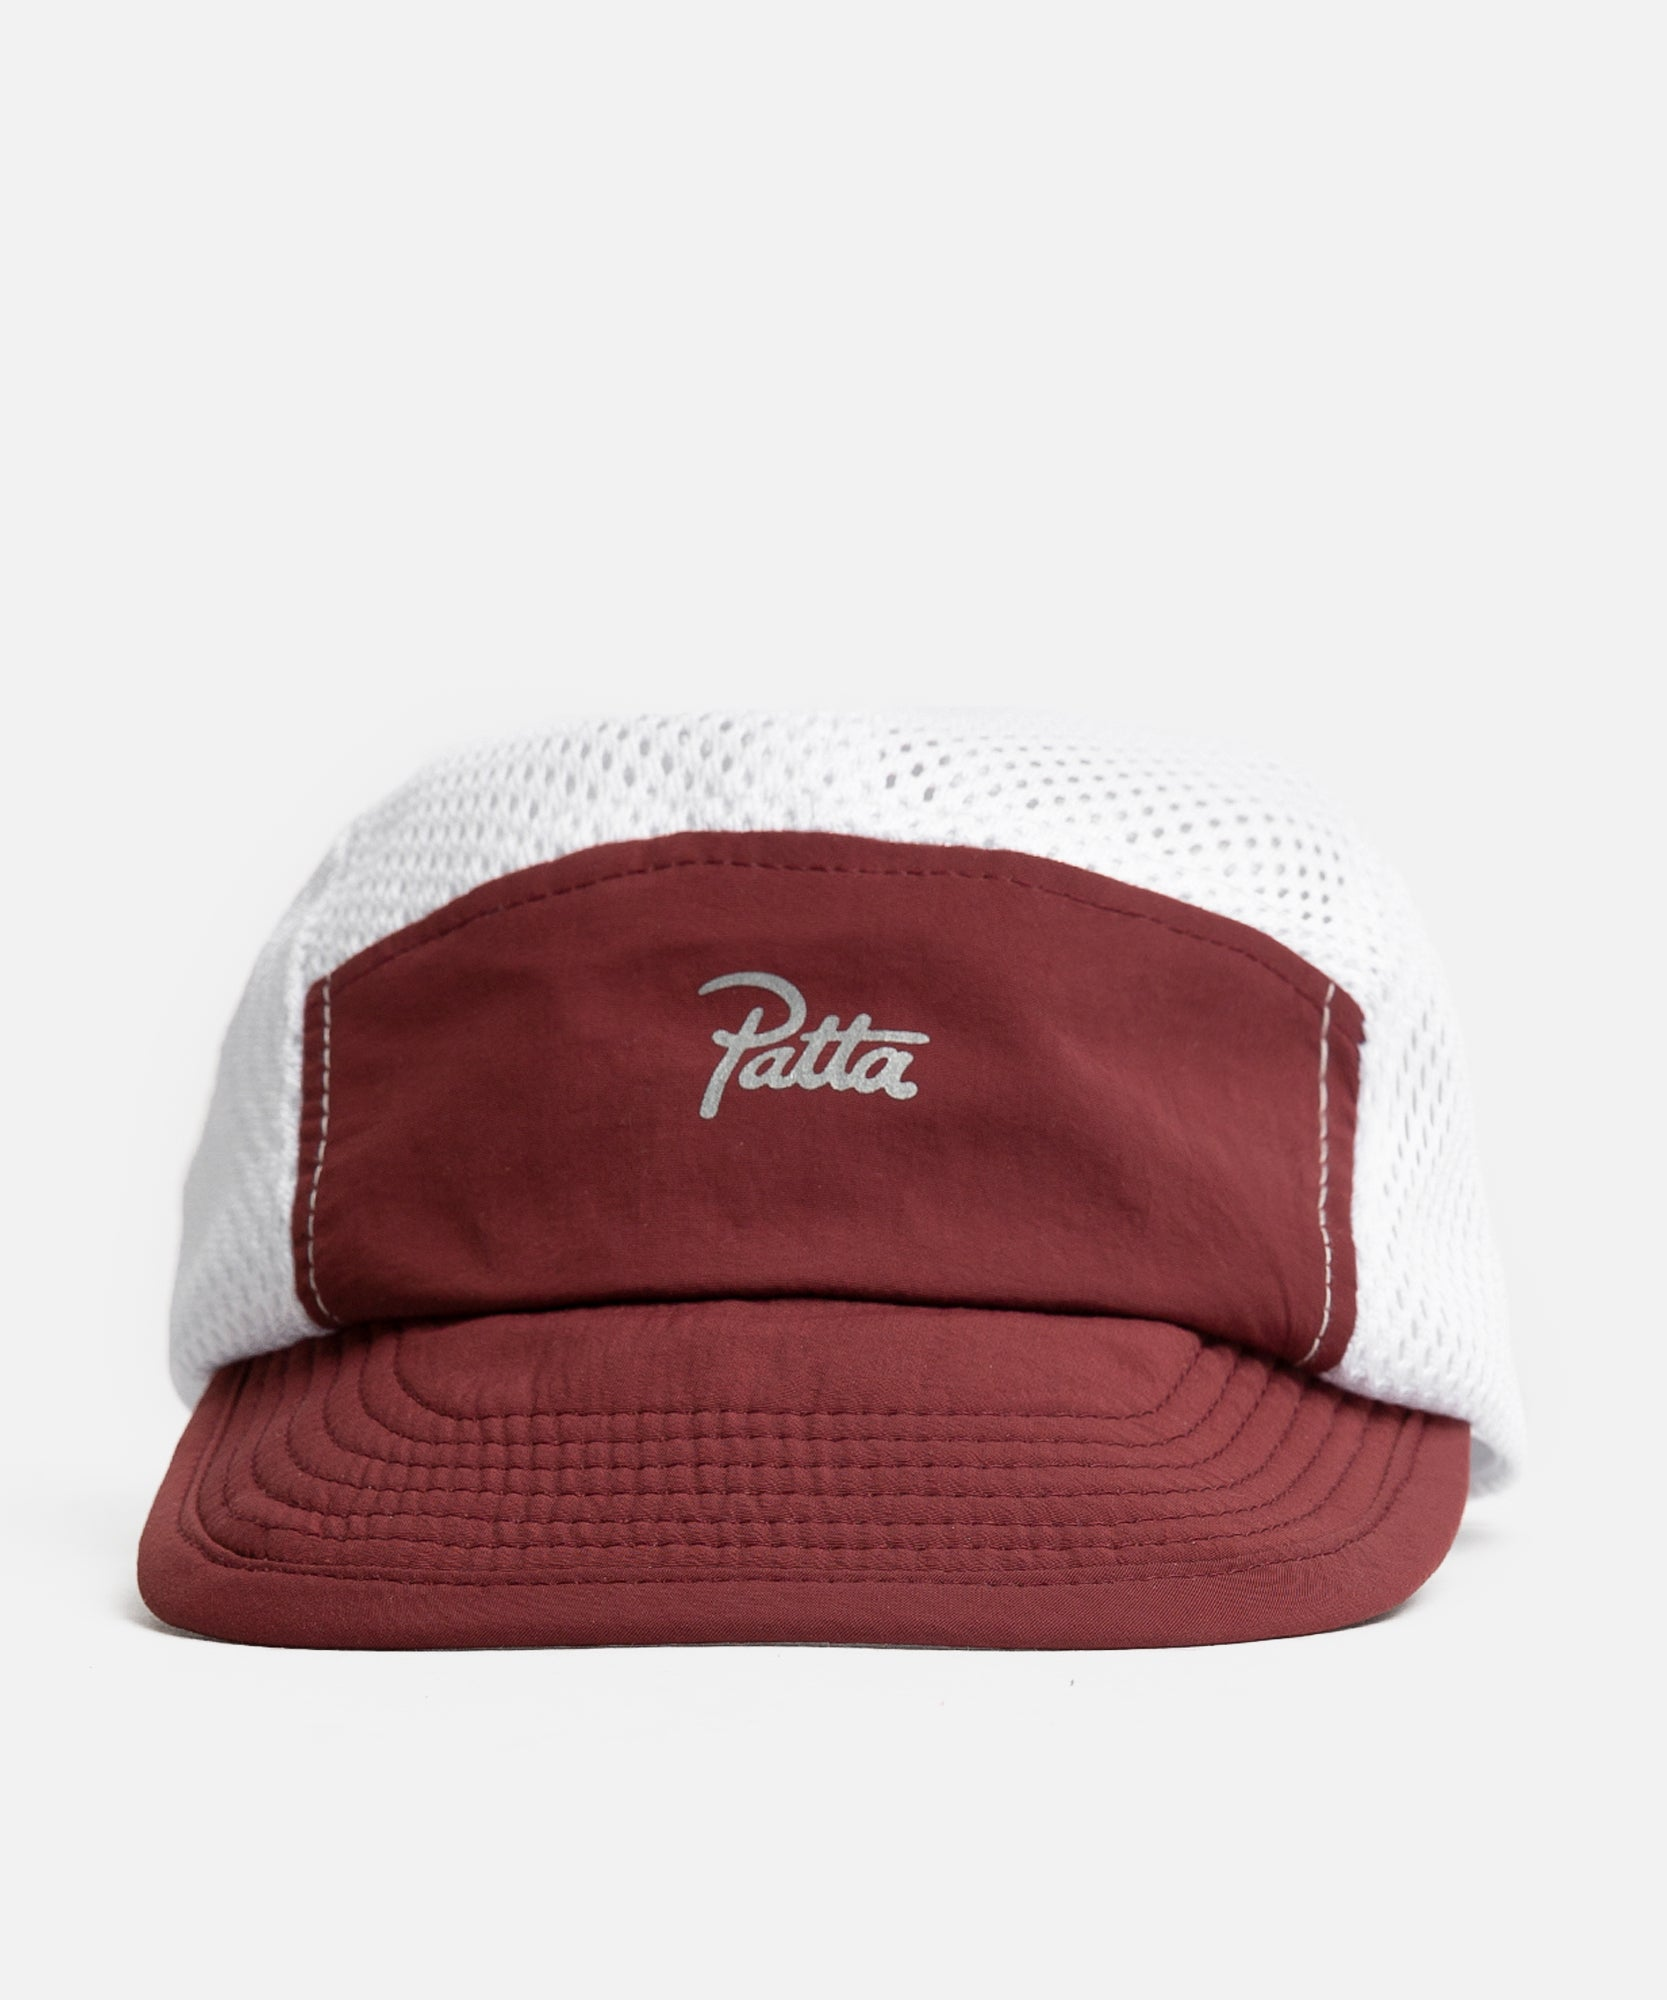 Patta Hiking Camp Hat (Pomegranate/White)